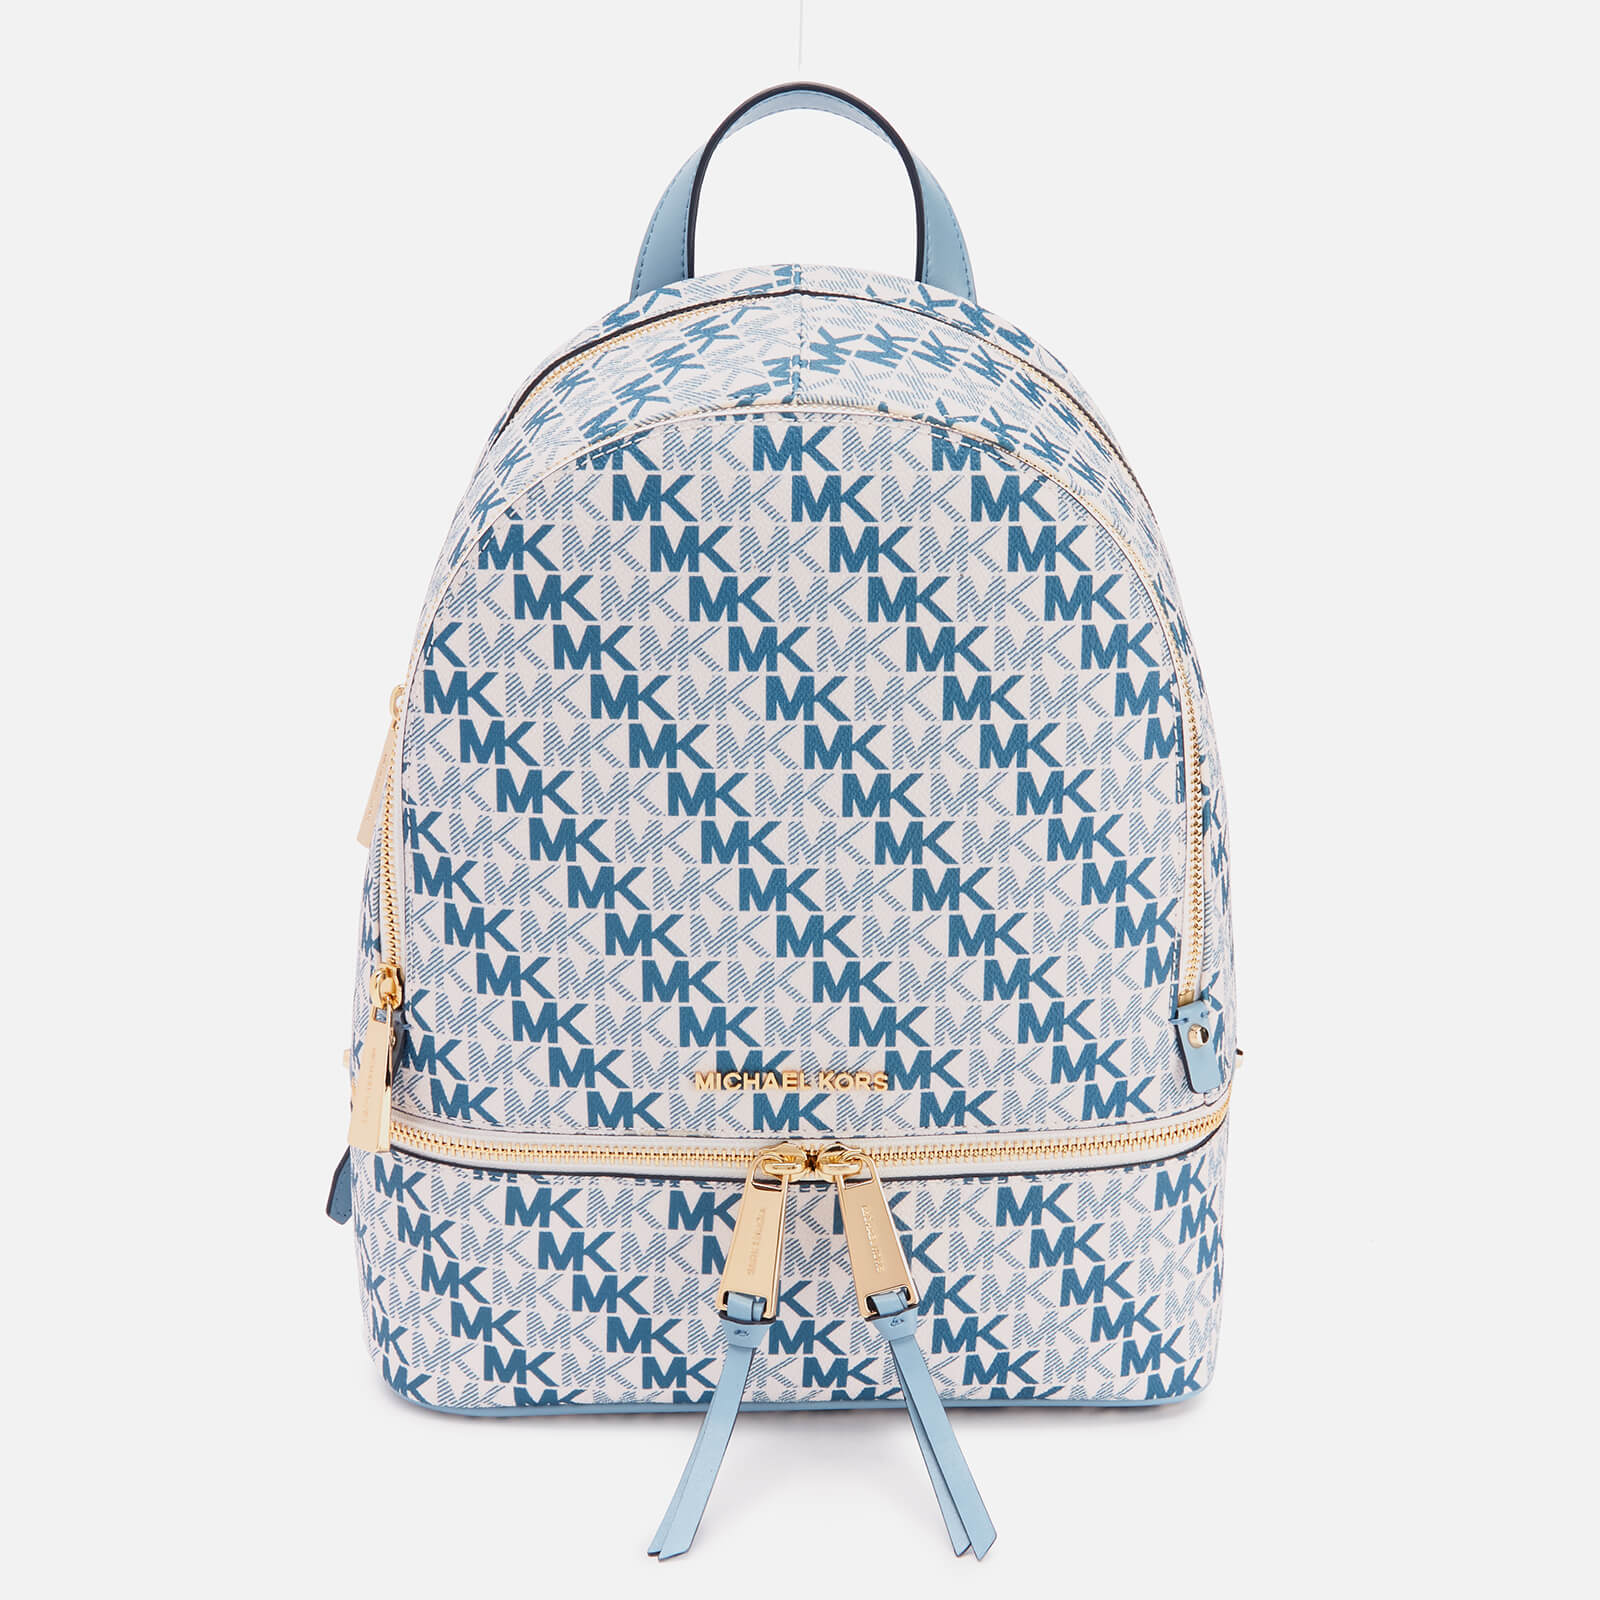 a3a3af595611c3 MICHAEL MICHAEL KORS Women's Rhea Zip Medium Backpack - Optic White - Free  UK Delivery over £50